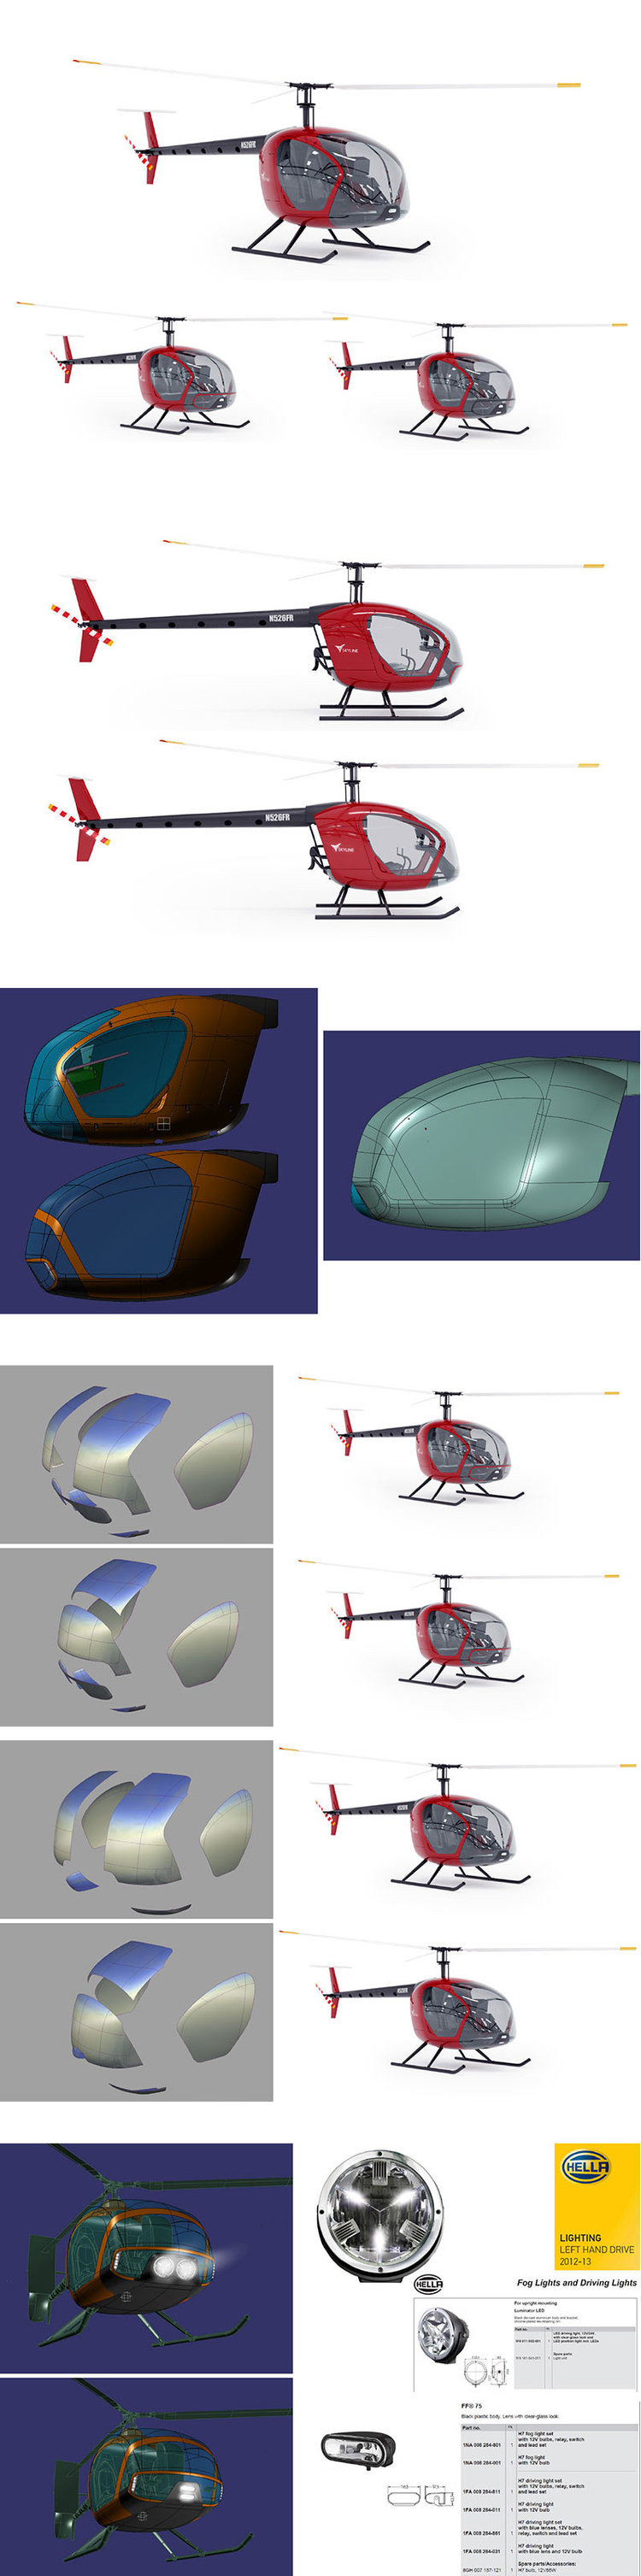 a full cad render of the model was used to present the design with two further explorations of parts for the front high beams